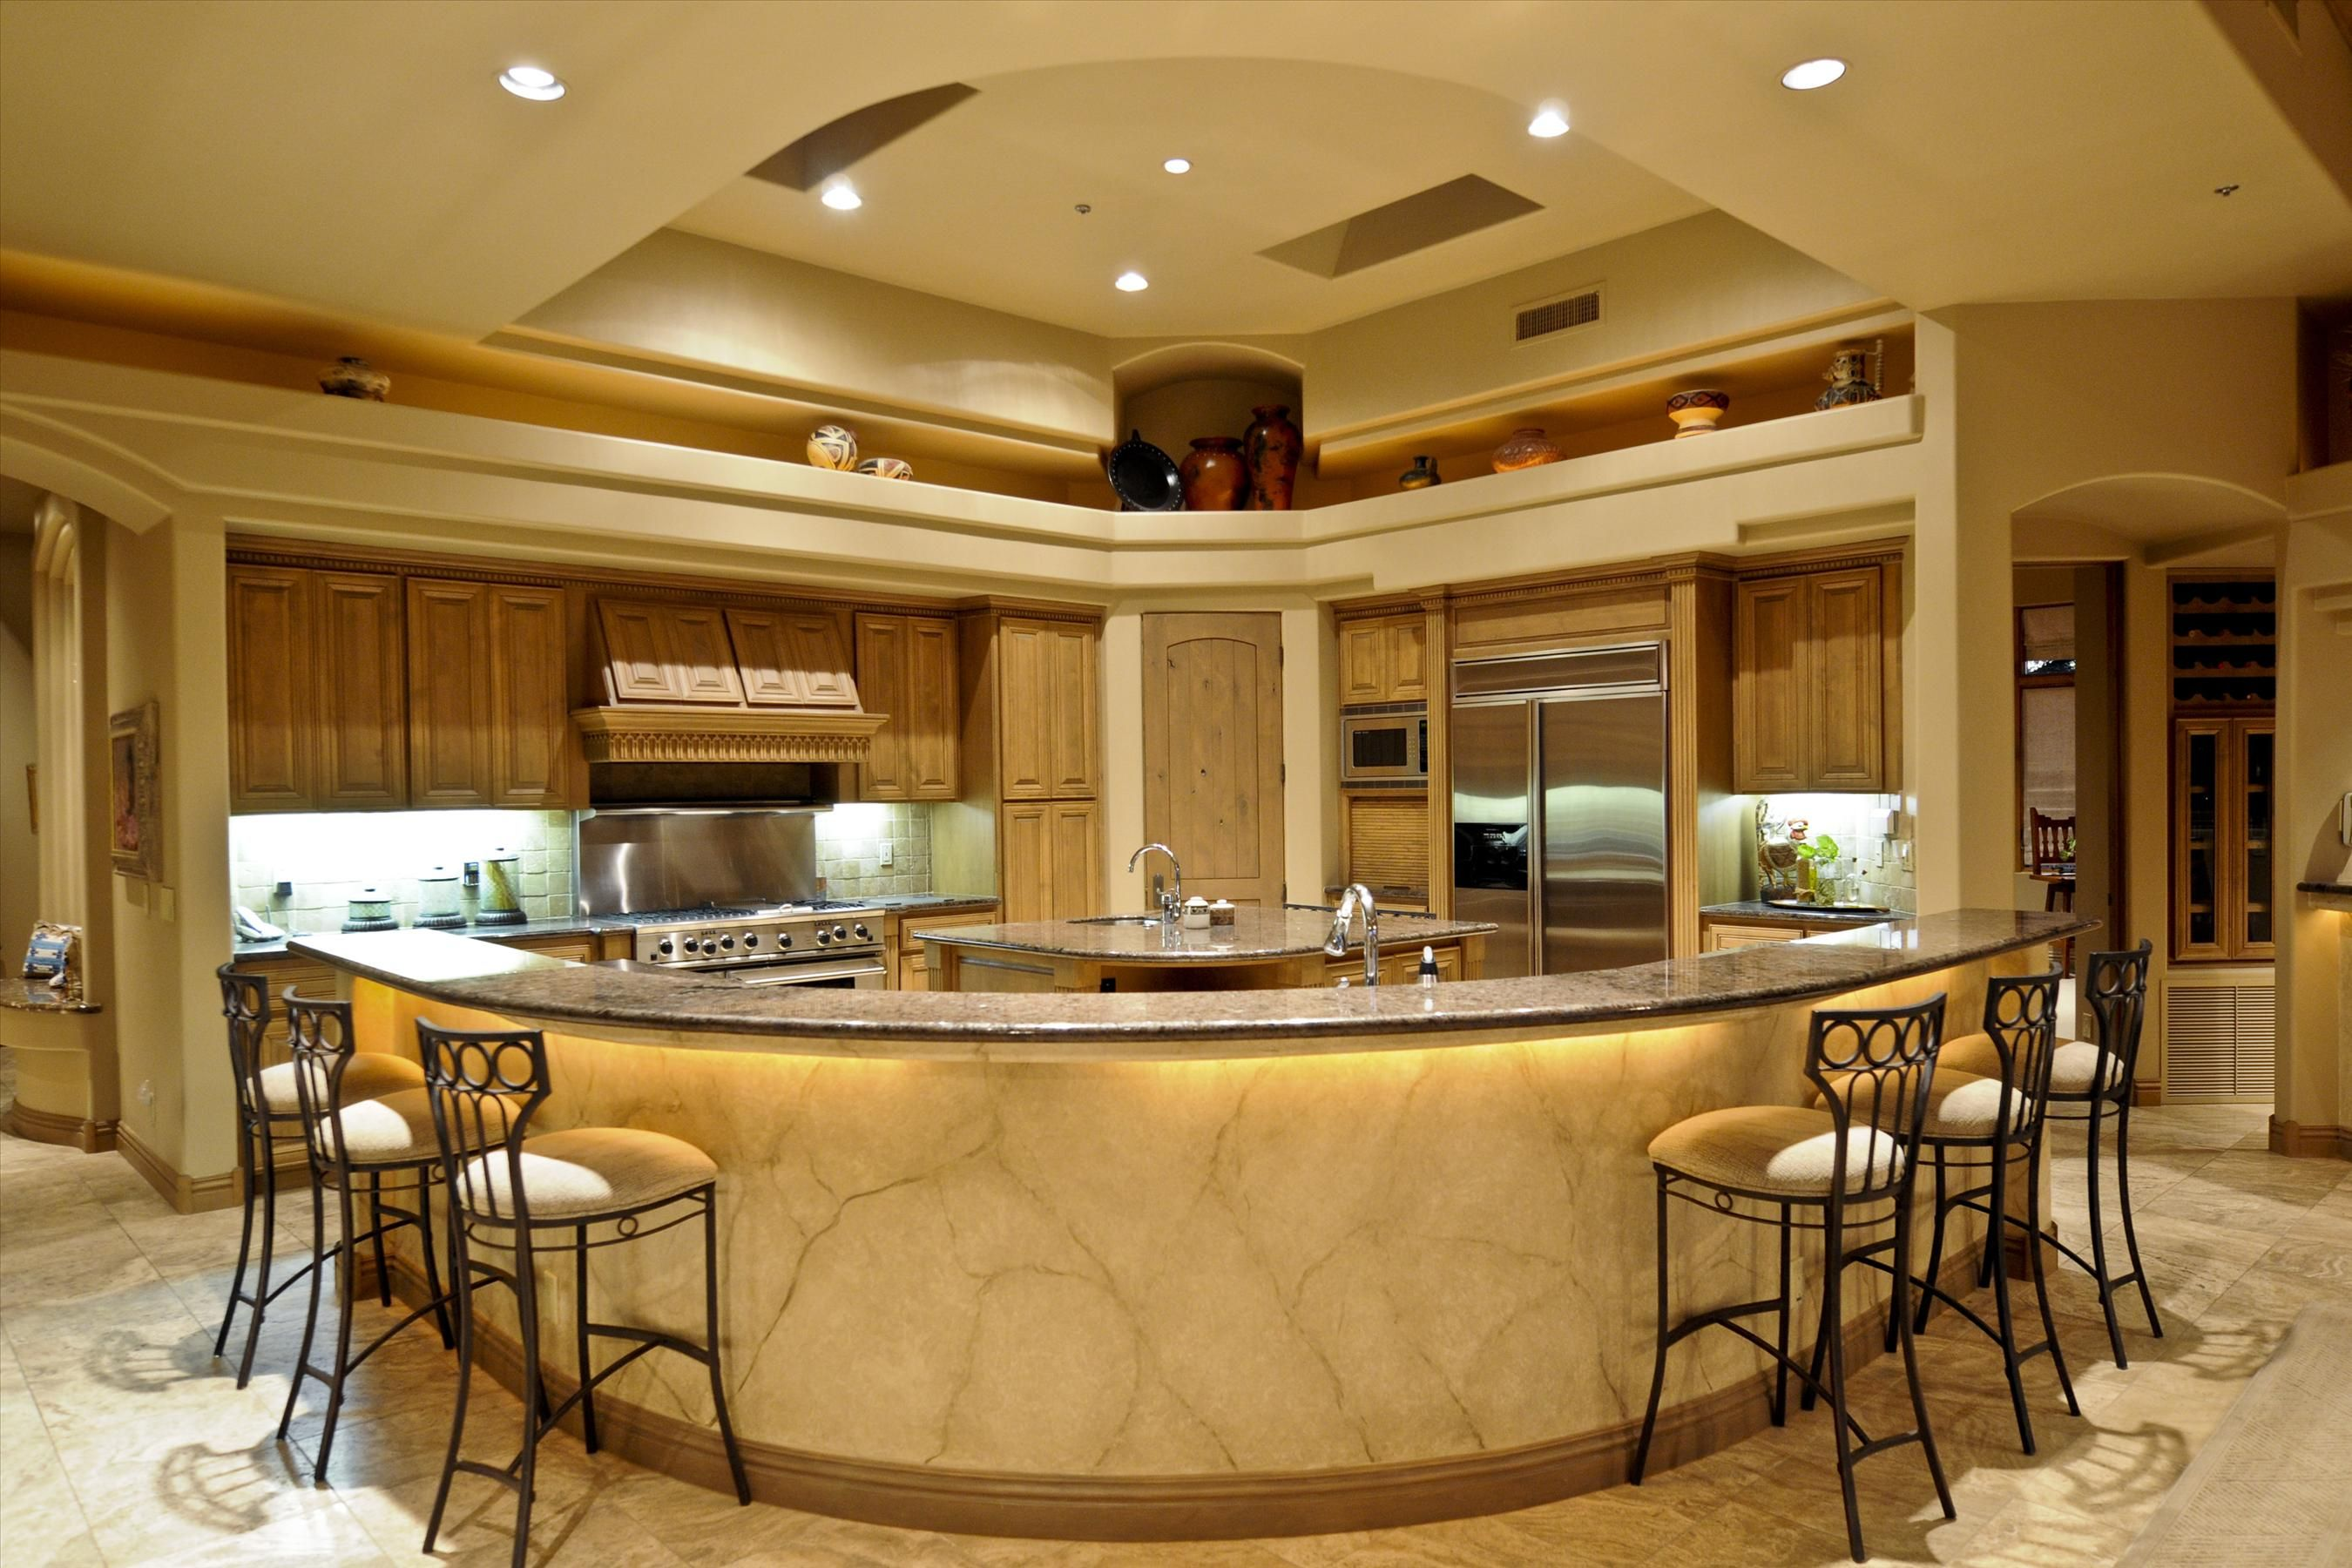 Premier luxury kitchens custom designed and for Luxury kitchen